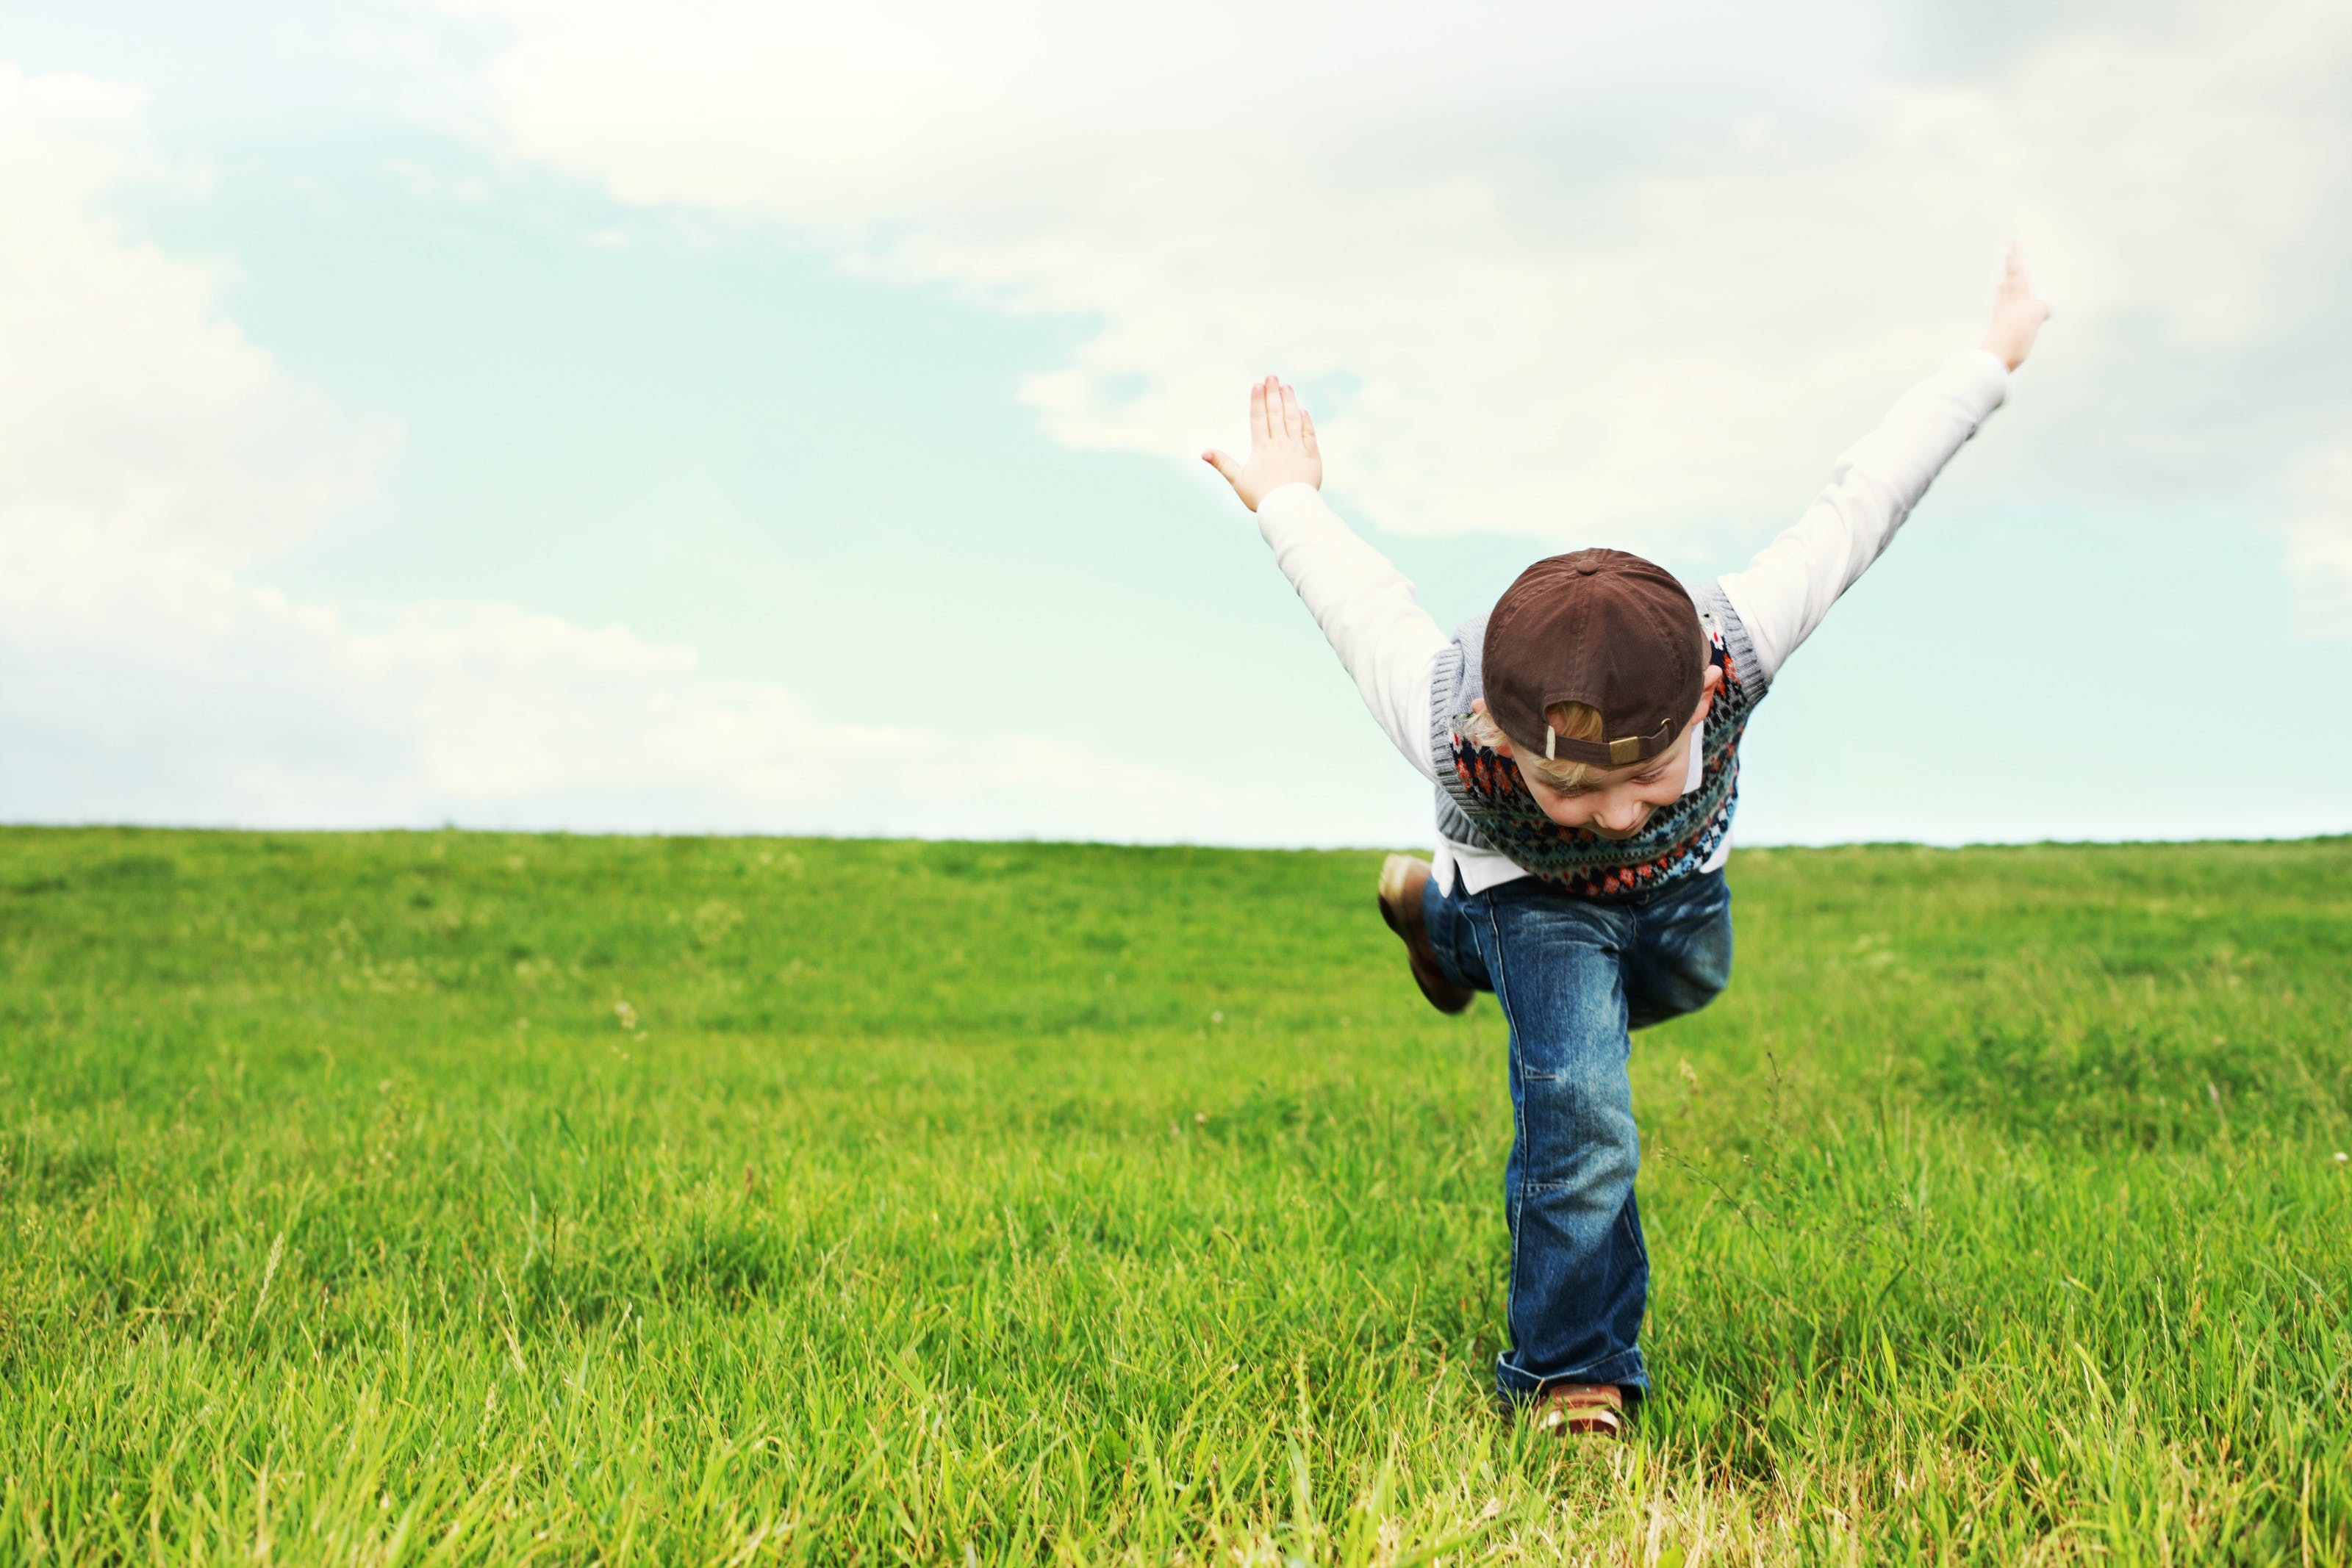 Boy Running on Green Grass Field